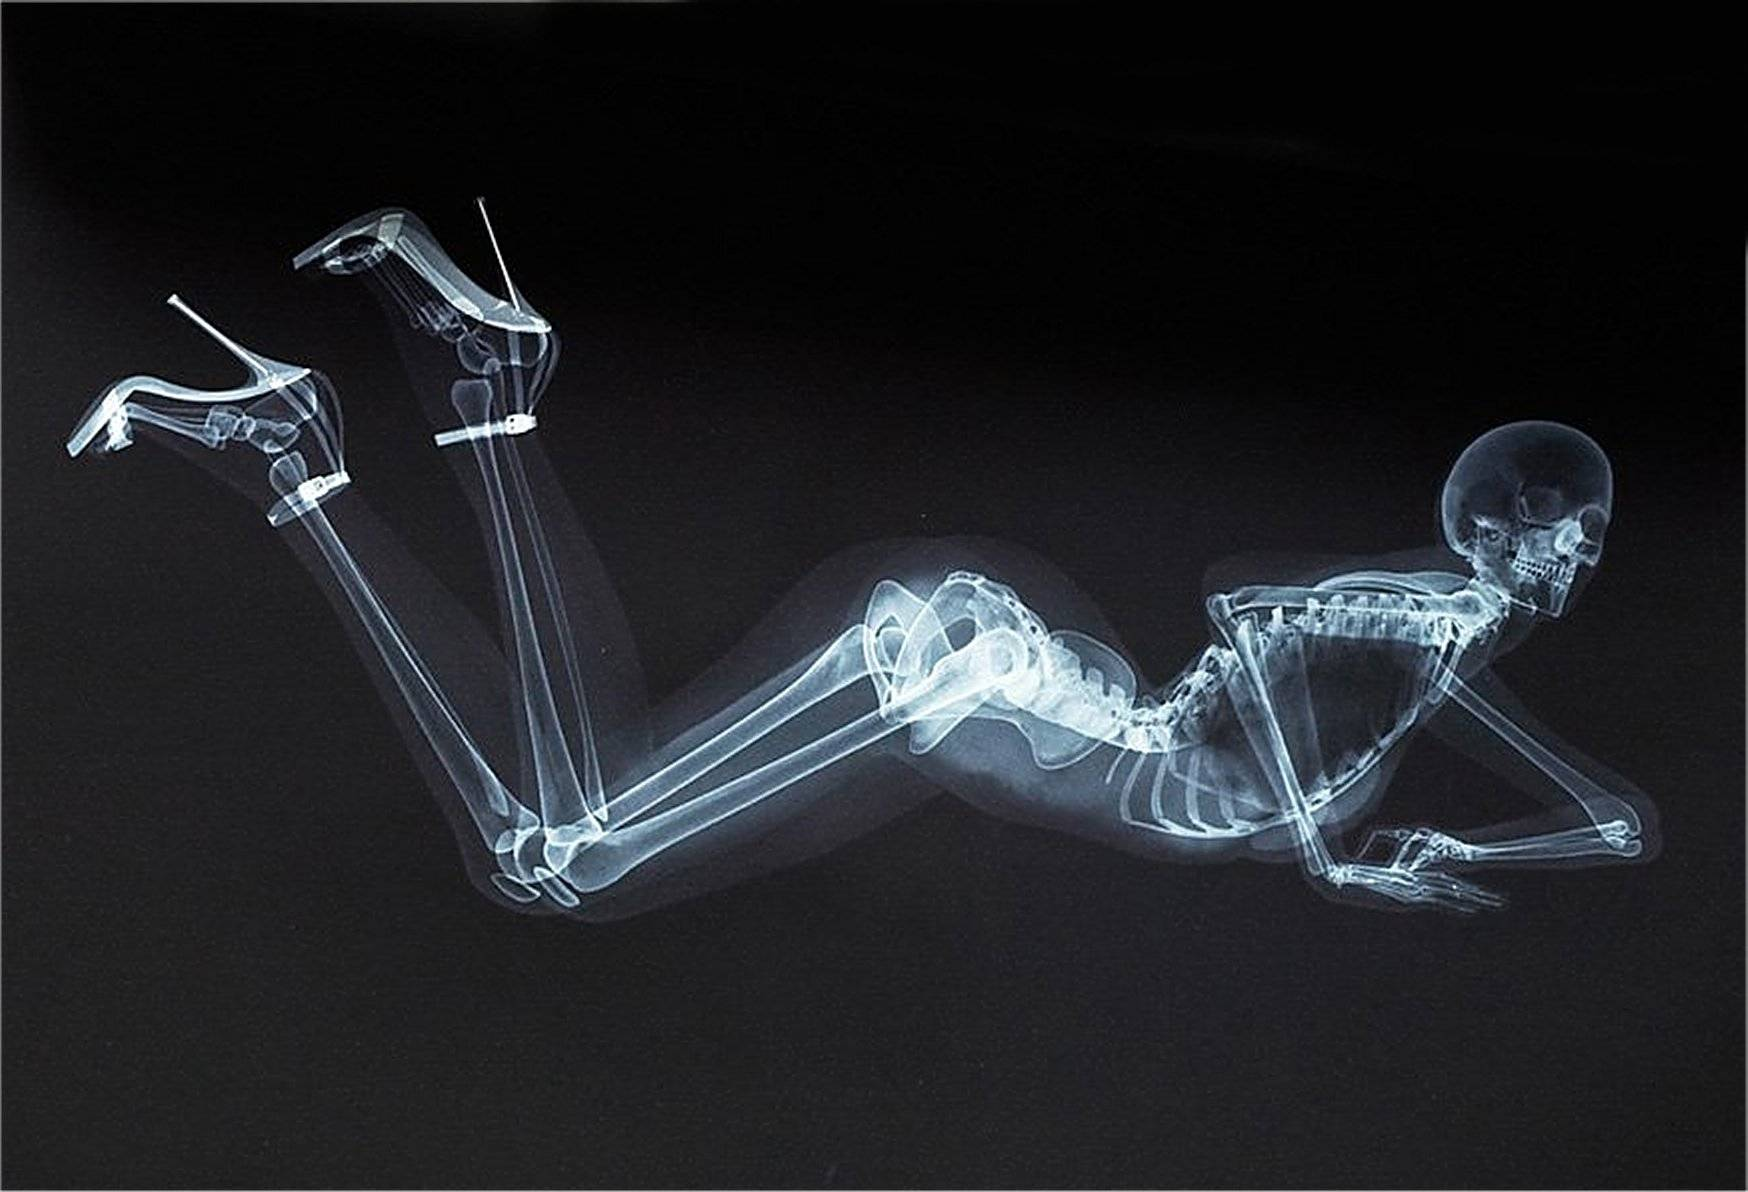 Xray Wallpapers Hd 273989 Pictures to pin 1748x1192